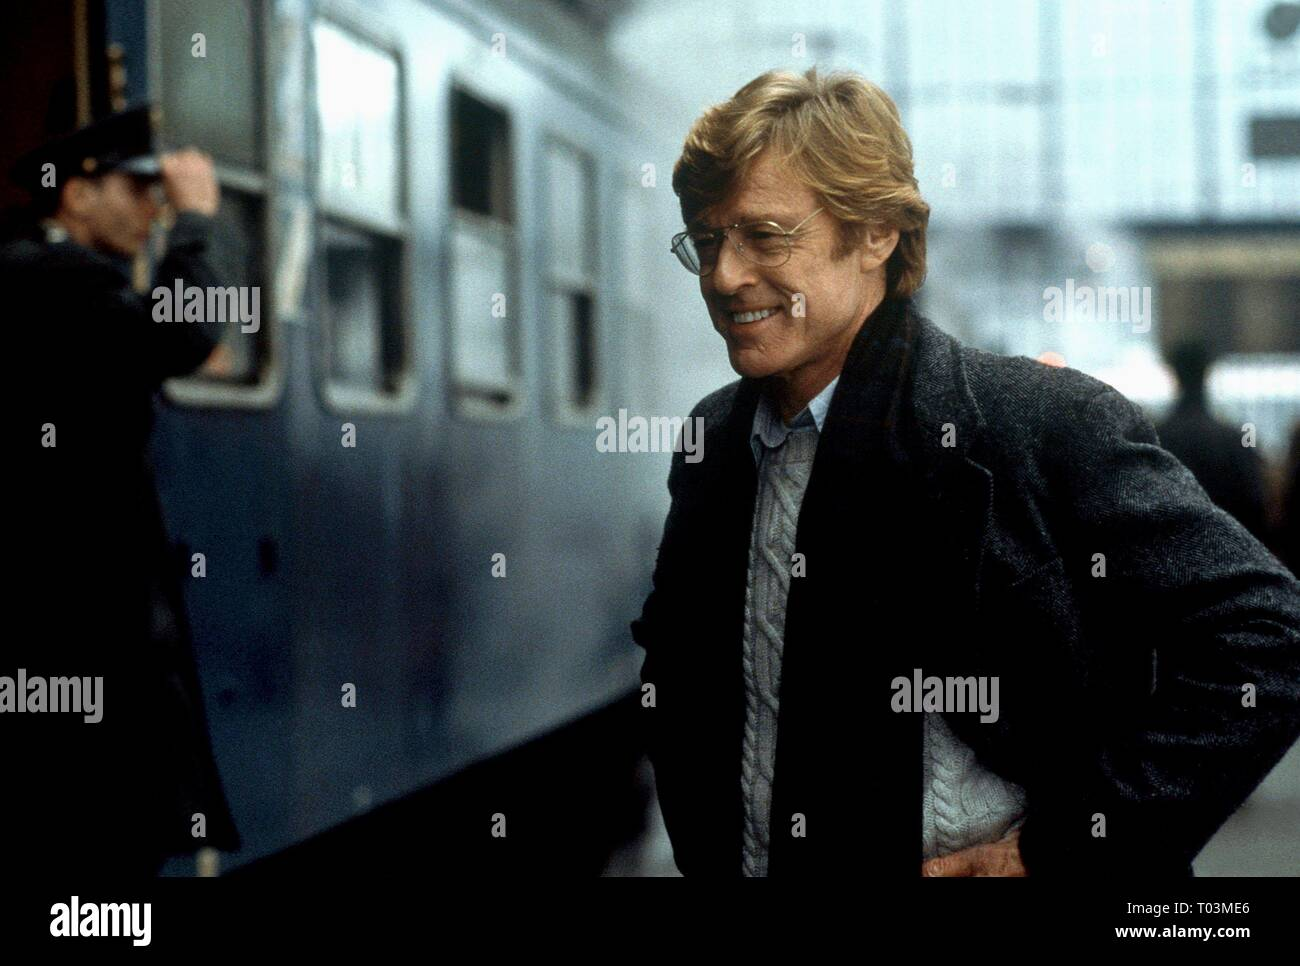 ROBERT REDFORD, SPY GAME, 2001 - Stock Image